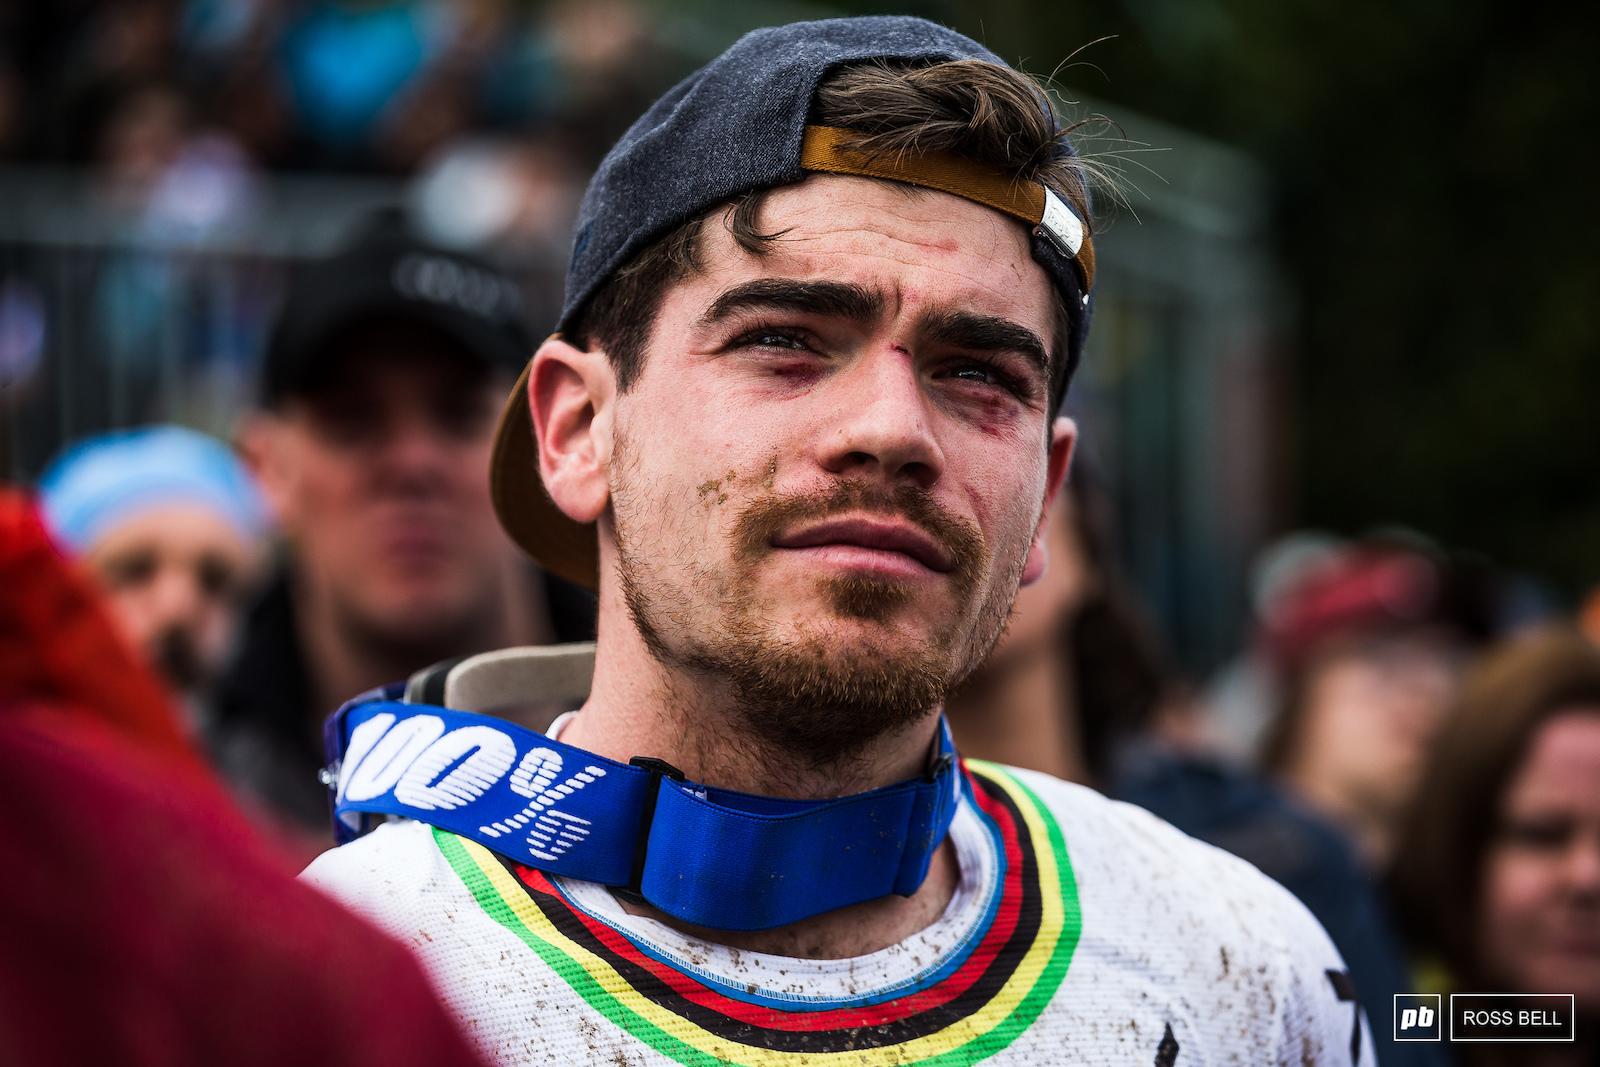 Battered and bruised but not out. Loic Bruni lost the number 1 plate and leaders jersey but will be hungry to get it back in Leogang next time out.